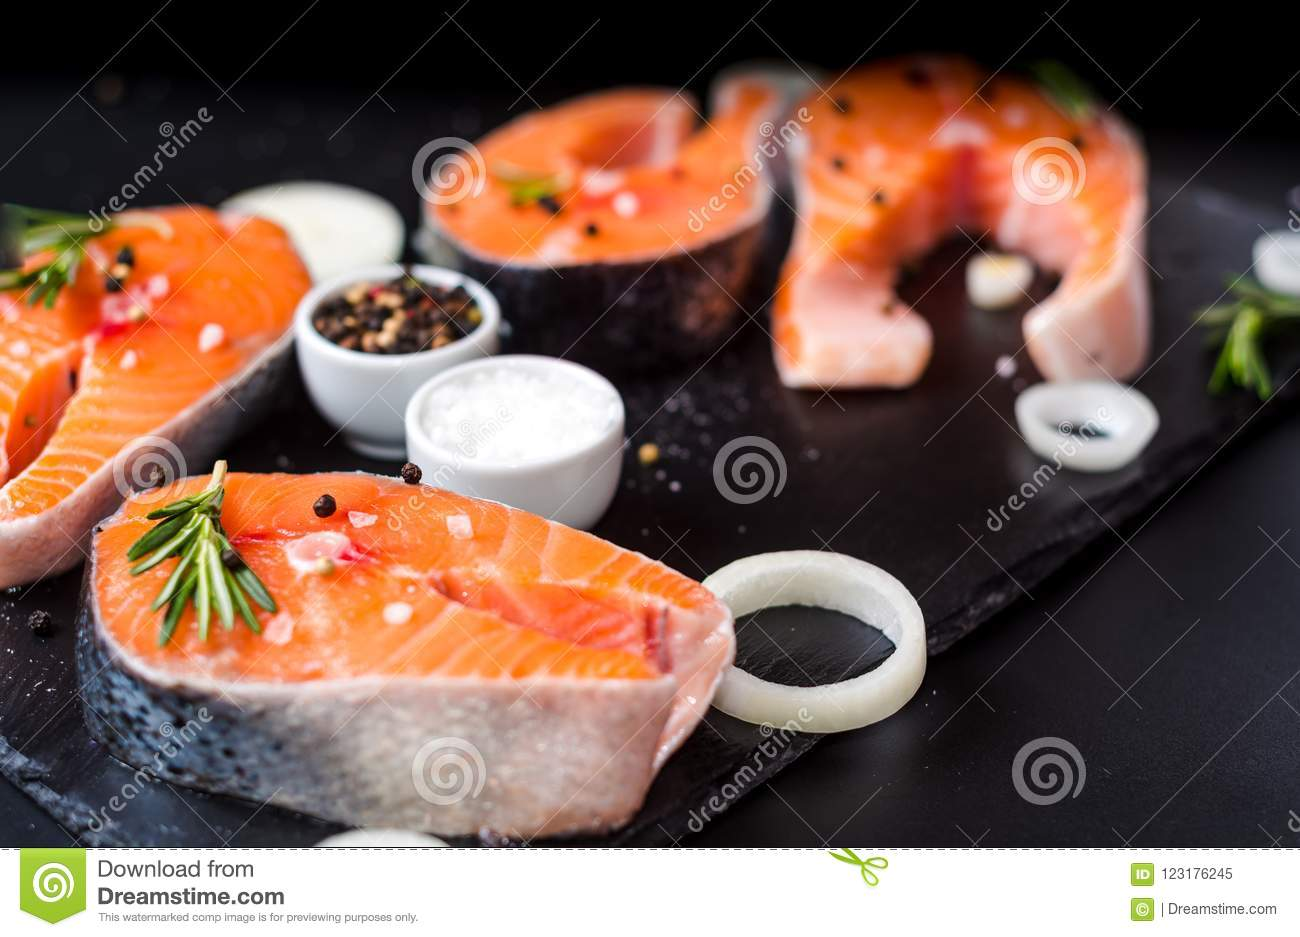 Raw Salmon Steak On Black Stone Prepared For Cooking Stock Image